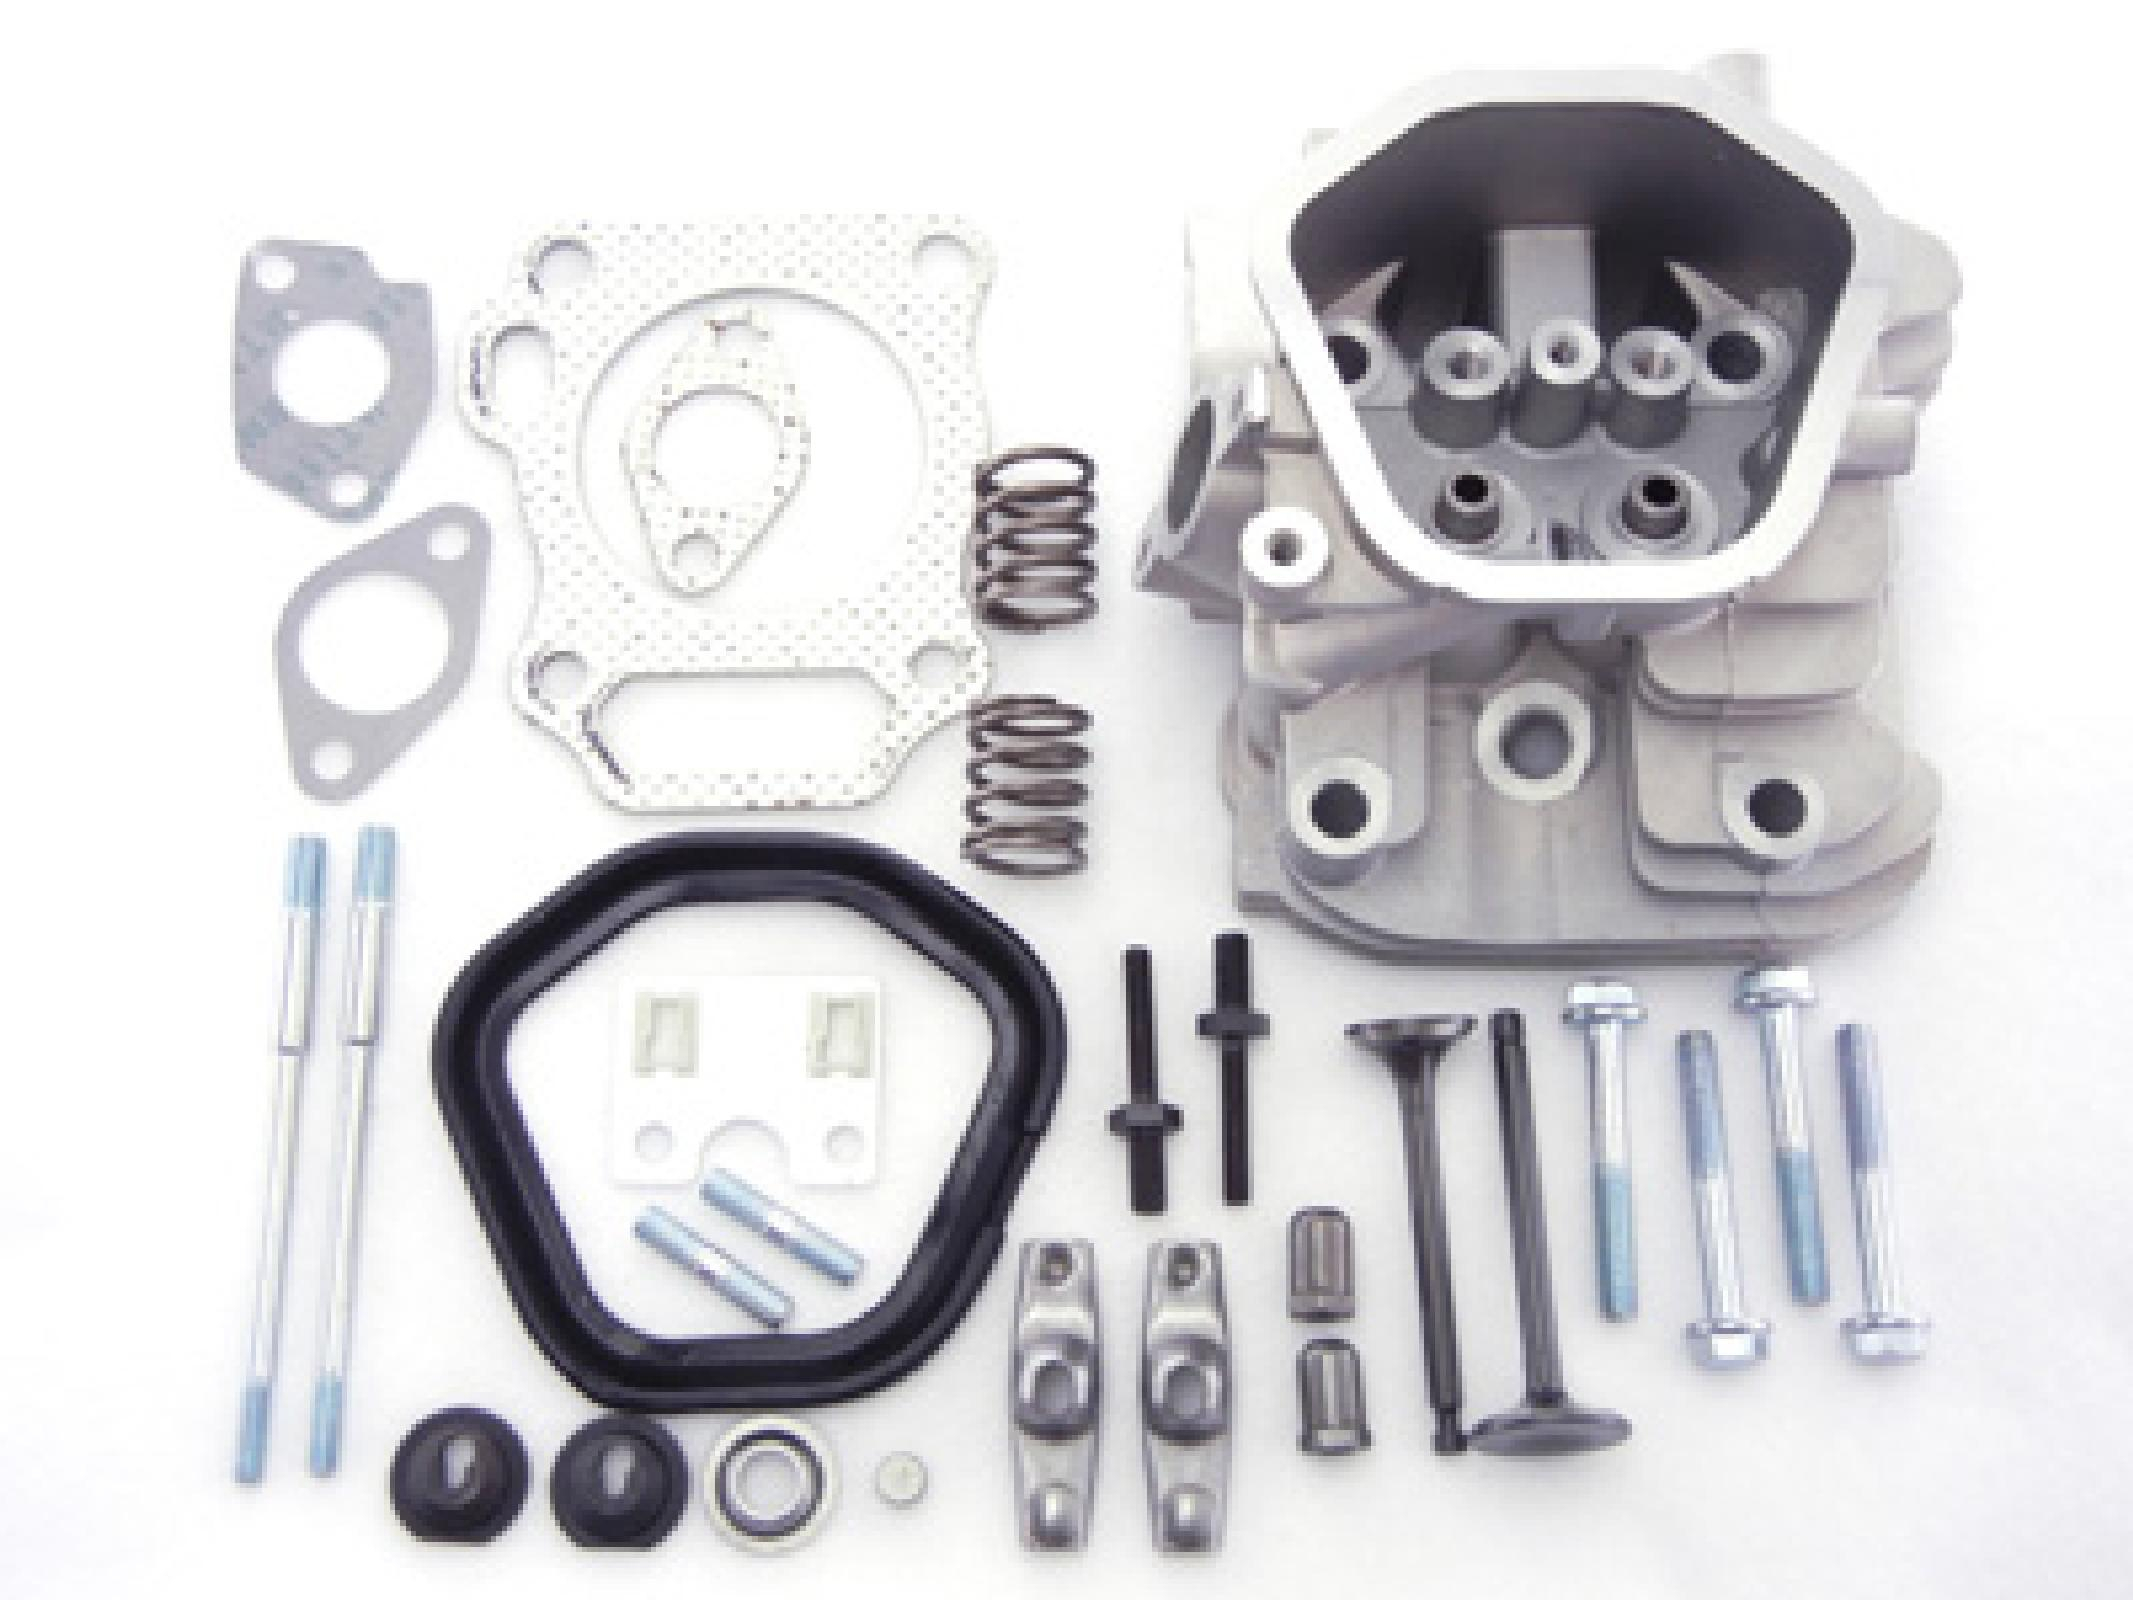 CYLINDER HEAD KIT COMPLETE FOR HONDA GX160-GX200 part# PF168A01